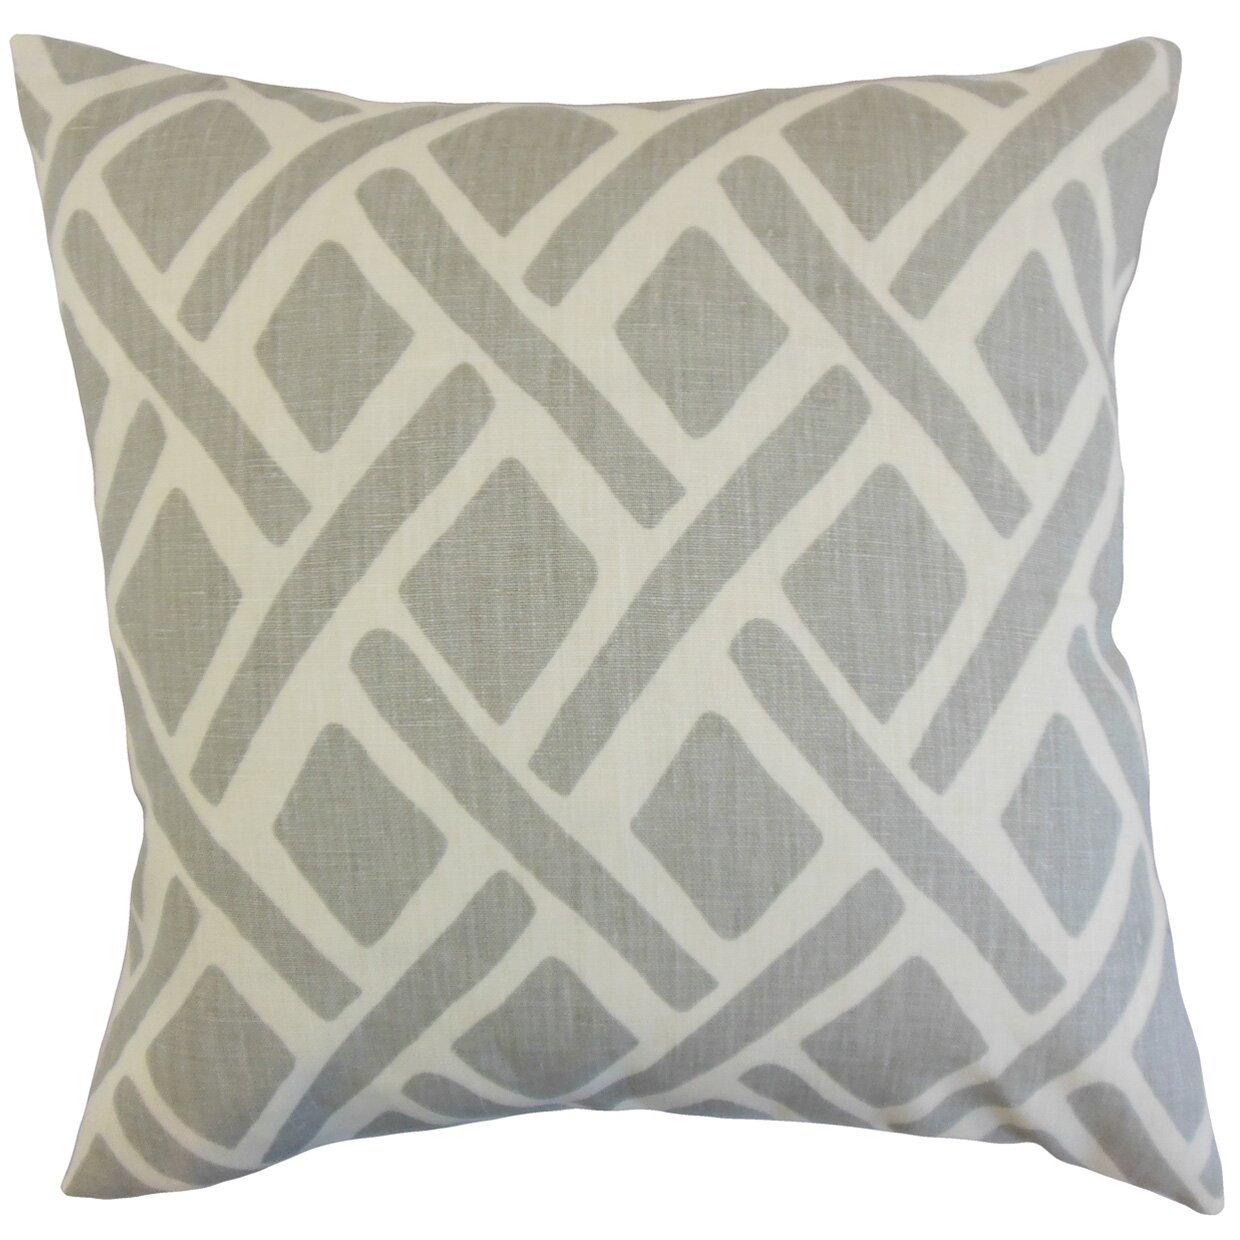 Max Studio Home Decorative Pillows : Brayden Studio Moton Geometric Linen Throw Pillow & Reviews Wayfair